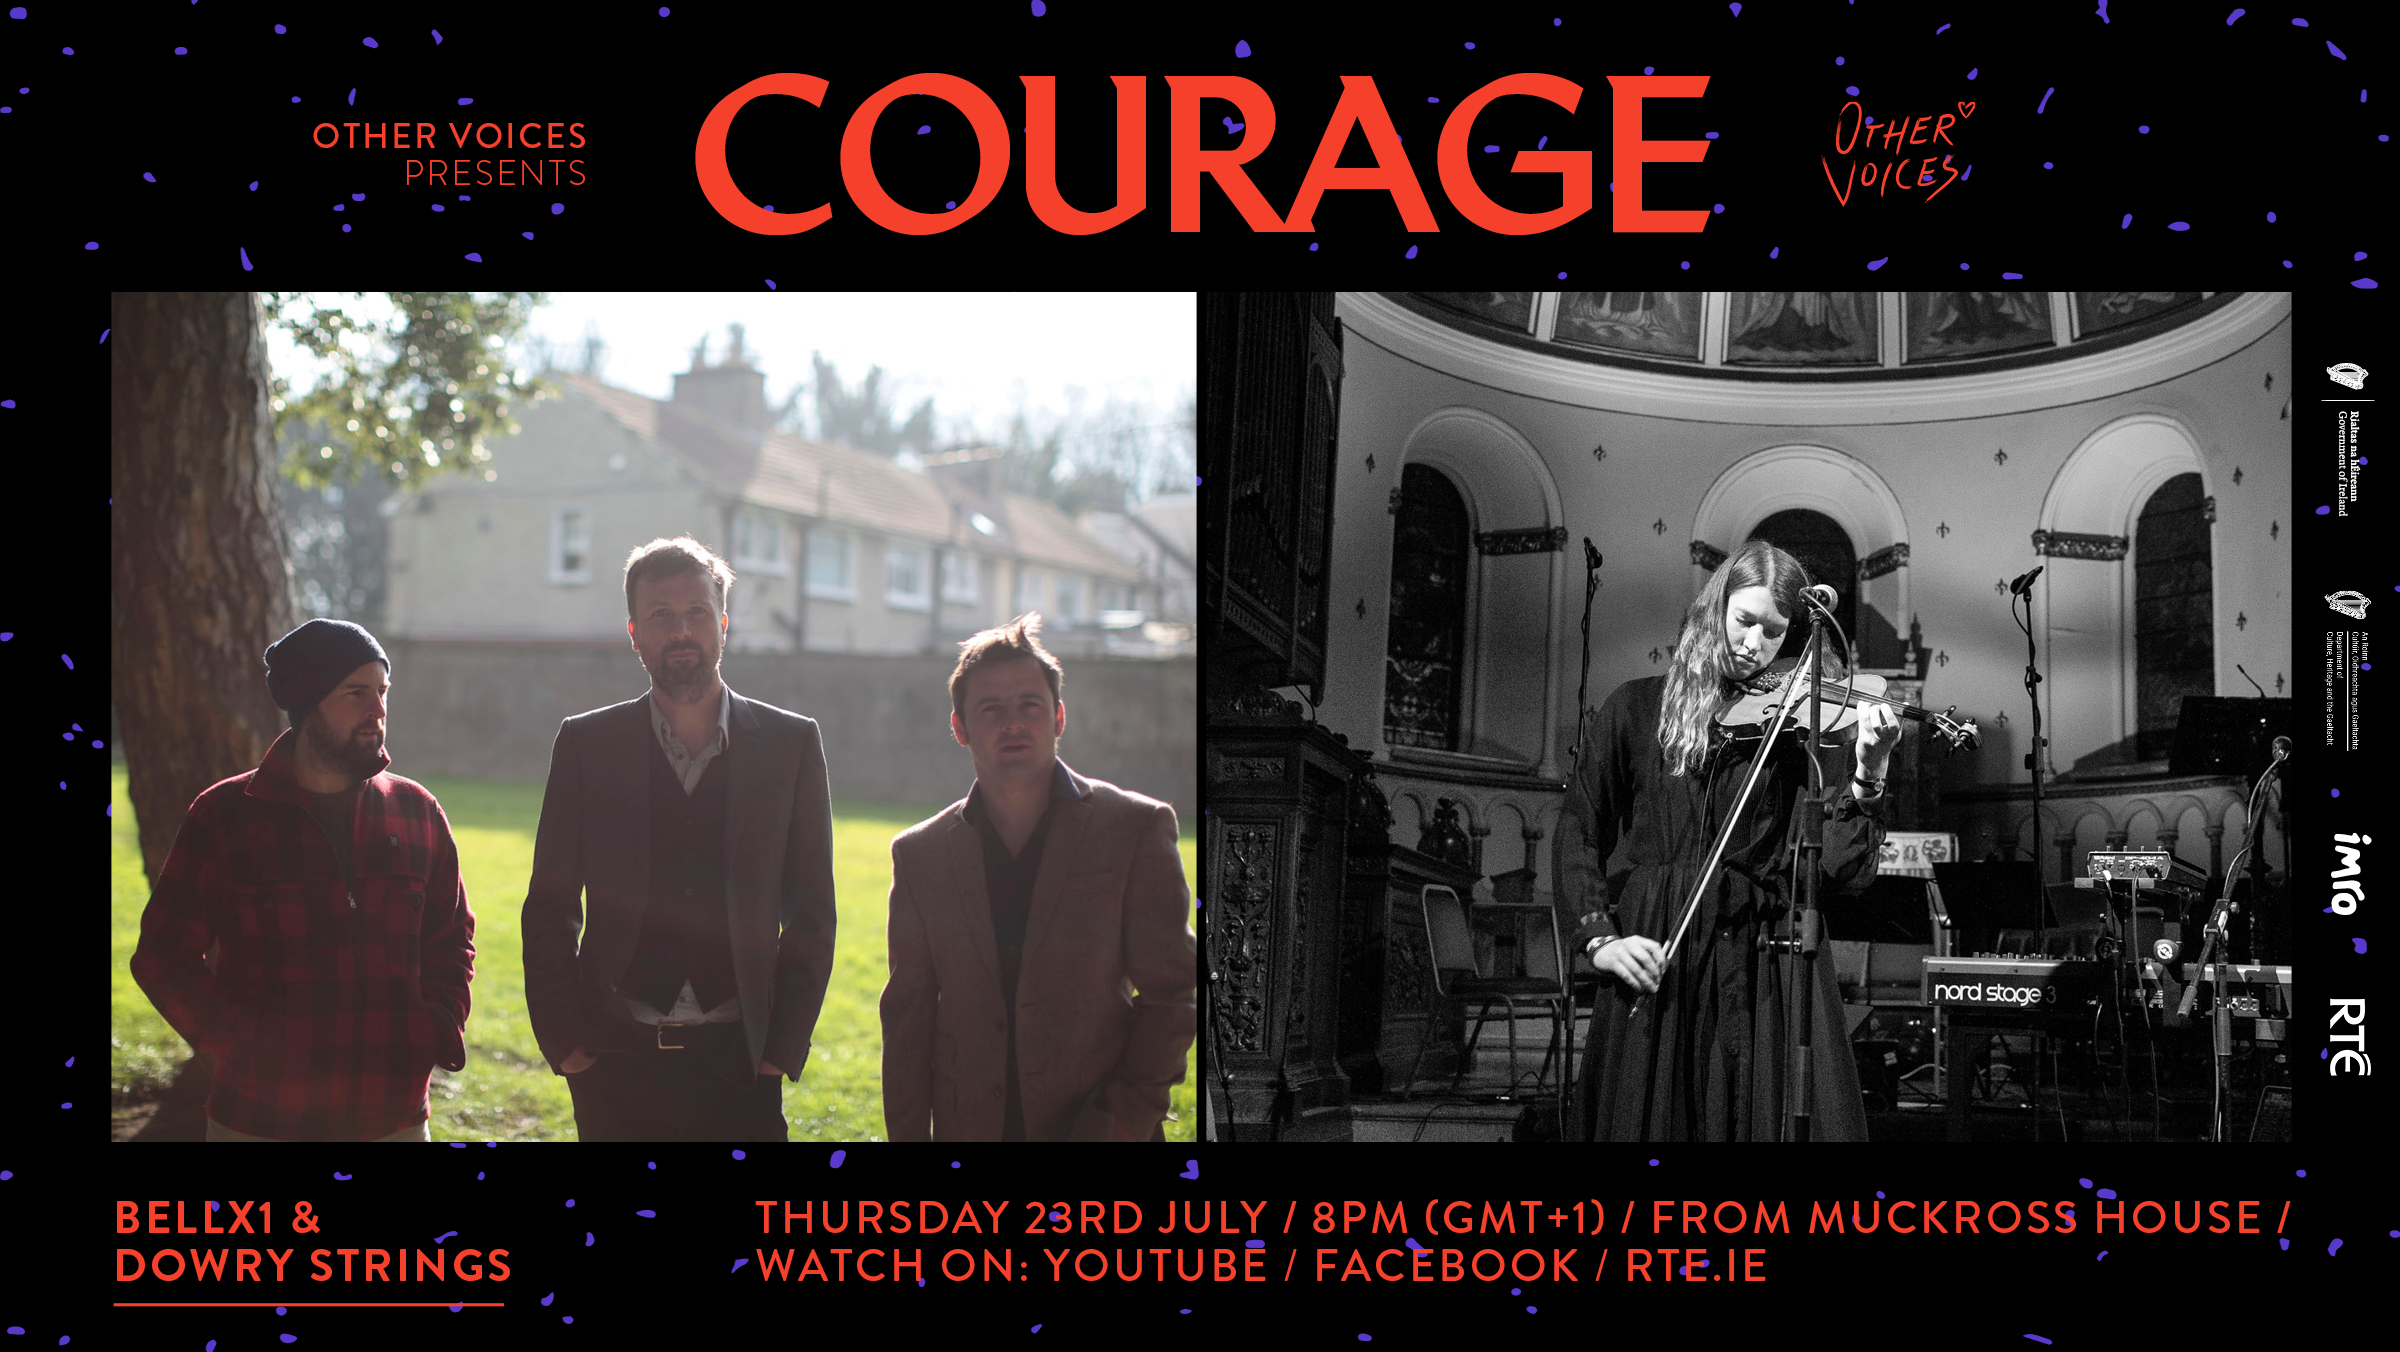 Courage: BELL X1 & Dowry Strings